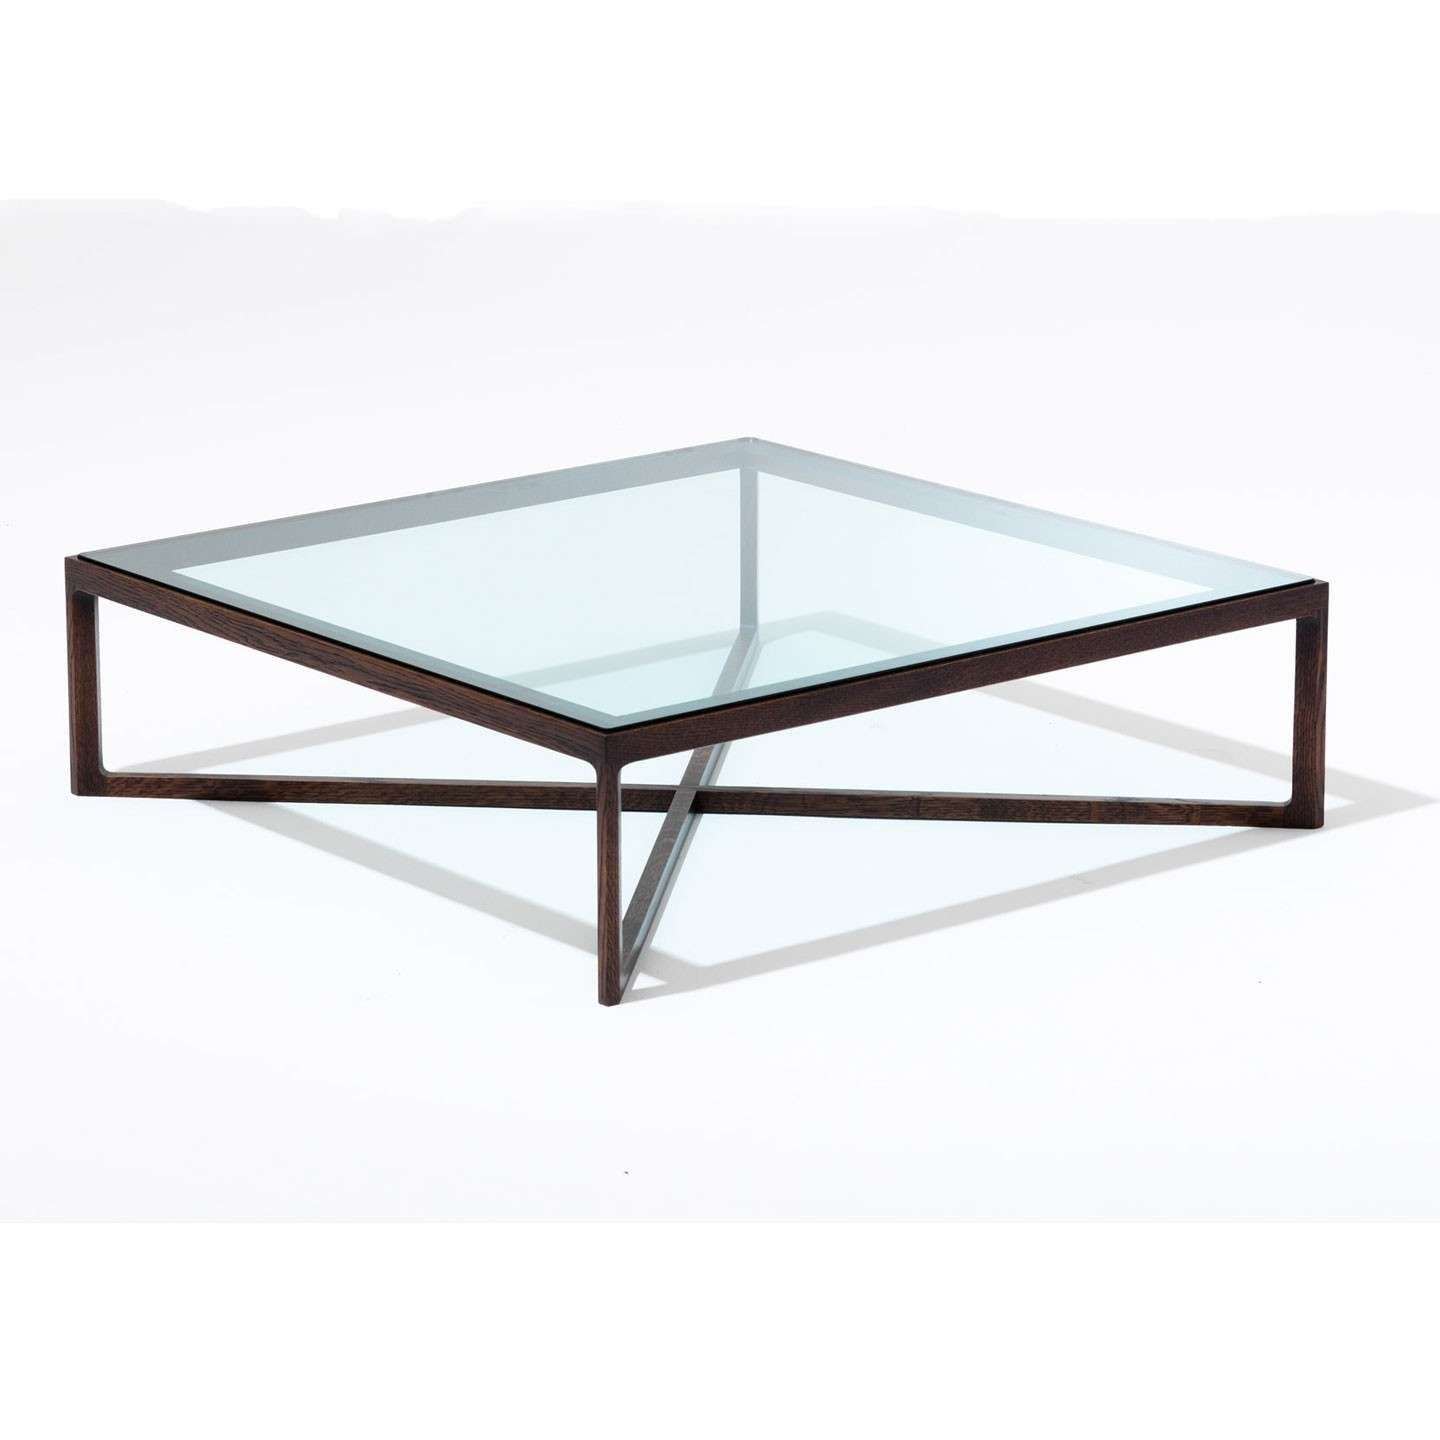 Decorations : Furniture Vintage Retro Style Coffee Table With For Famous Retro Glass Coffee Tables (View 14 of 20)